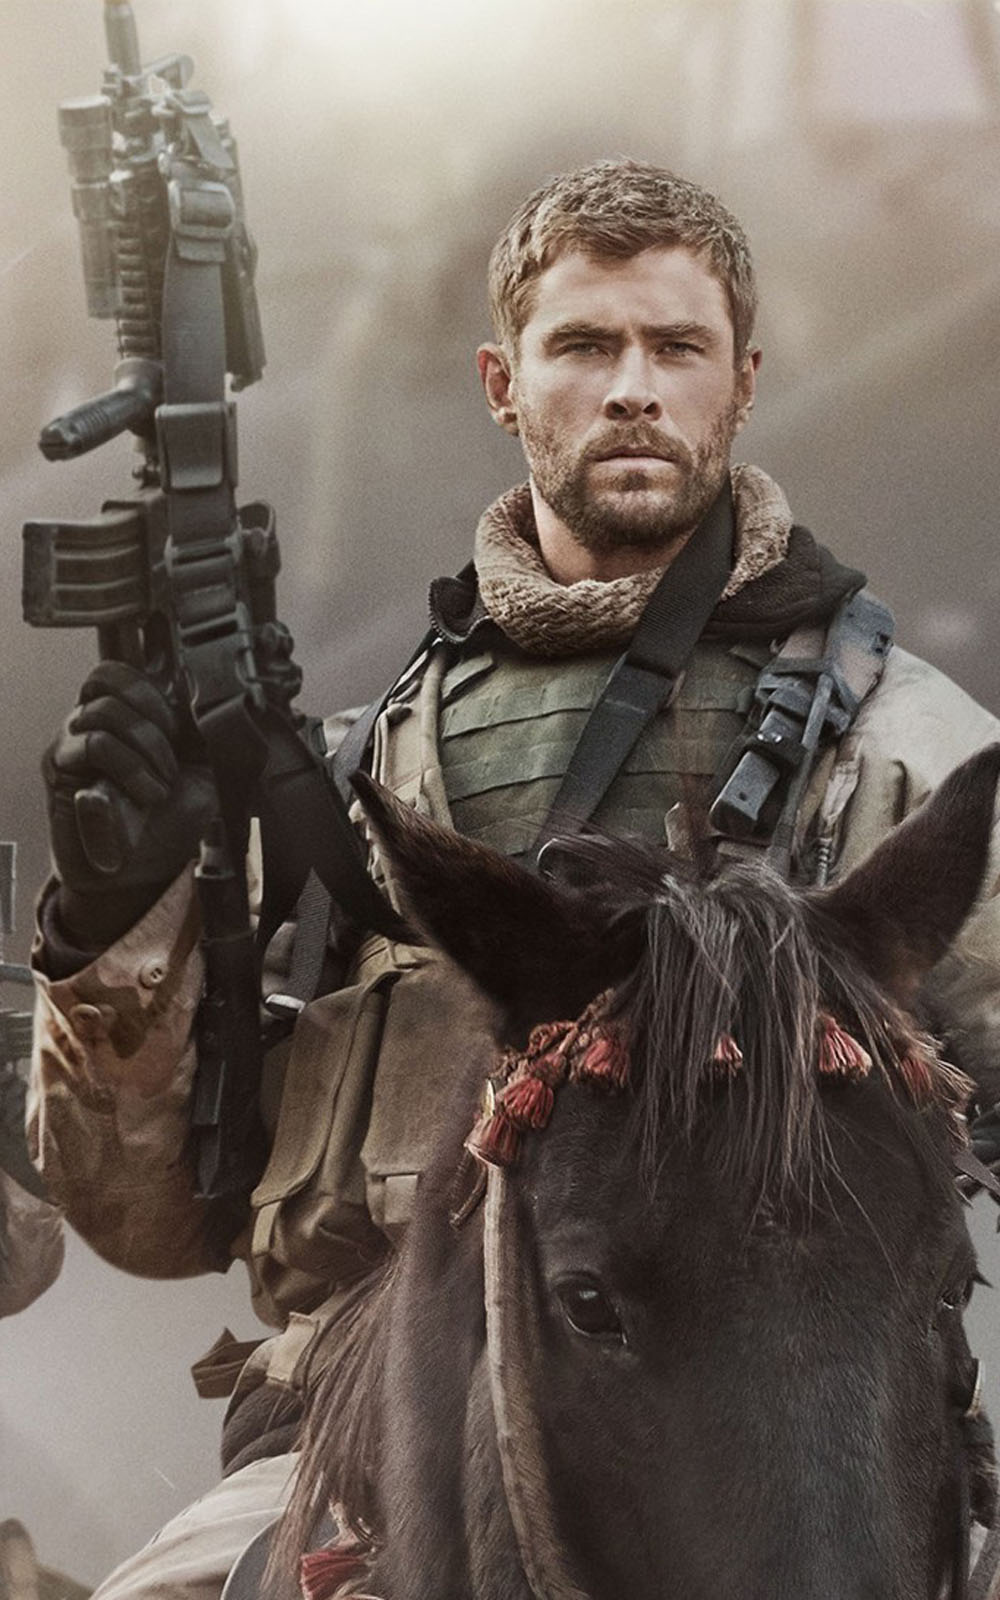 4k Anime Girl Wallpaper For Phones Download Chris Hemsworth In 12 Strong Free Pure 4k Ultra